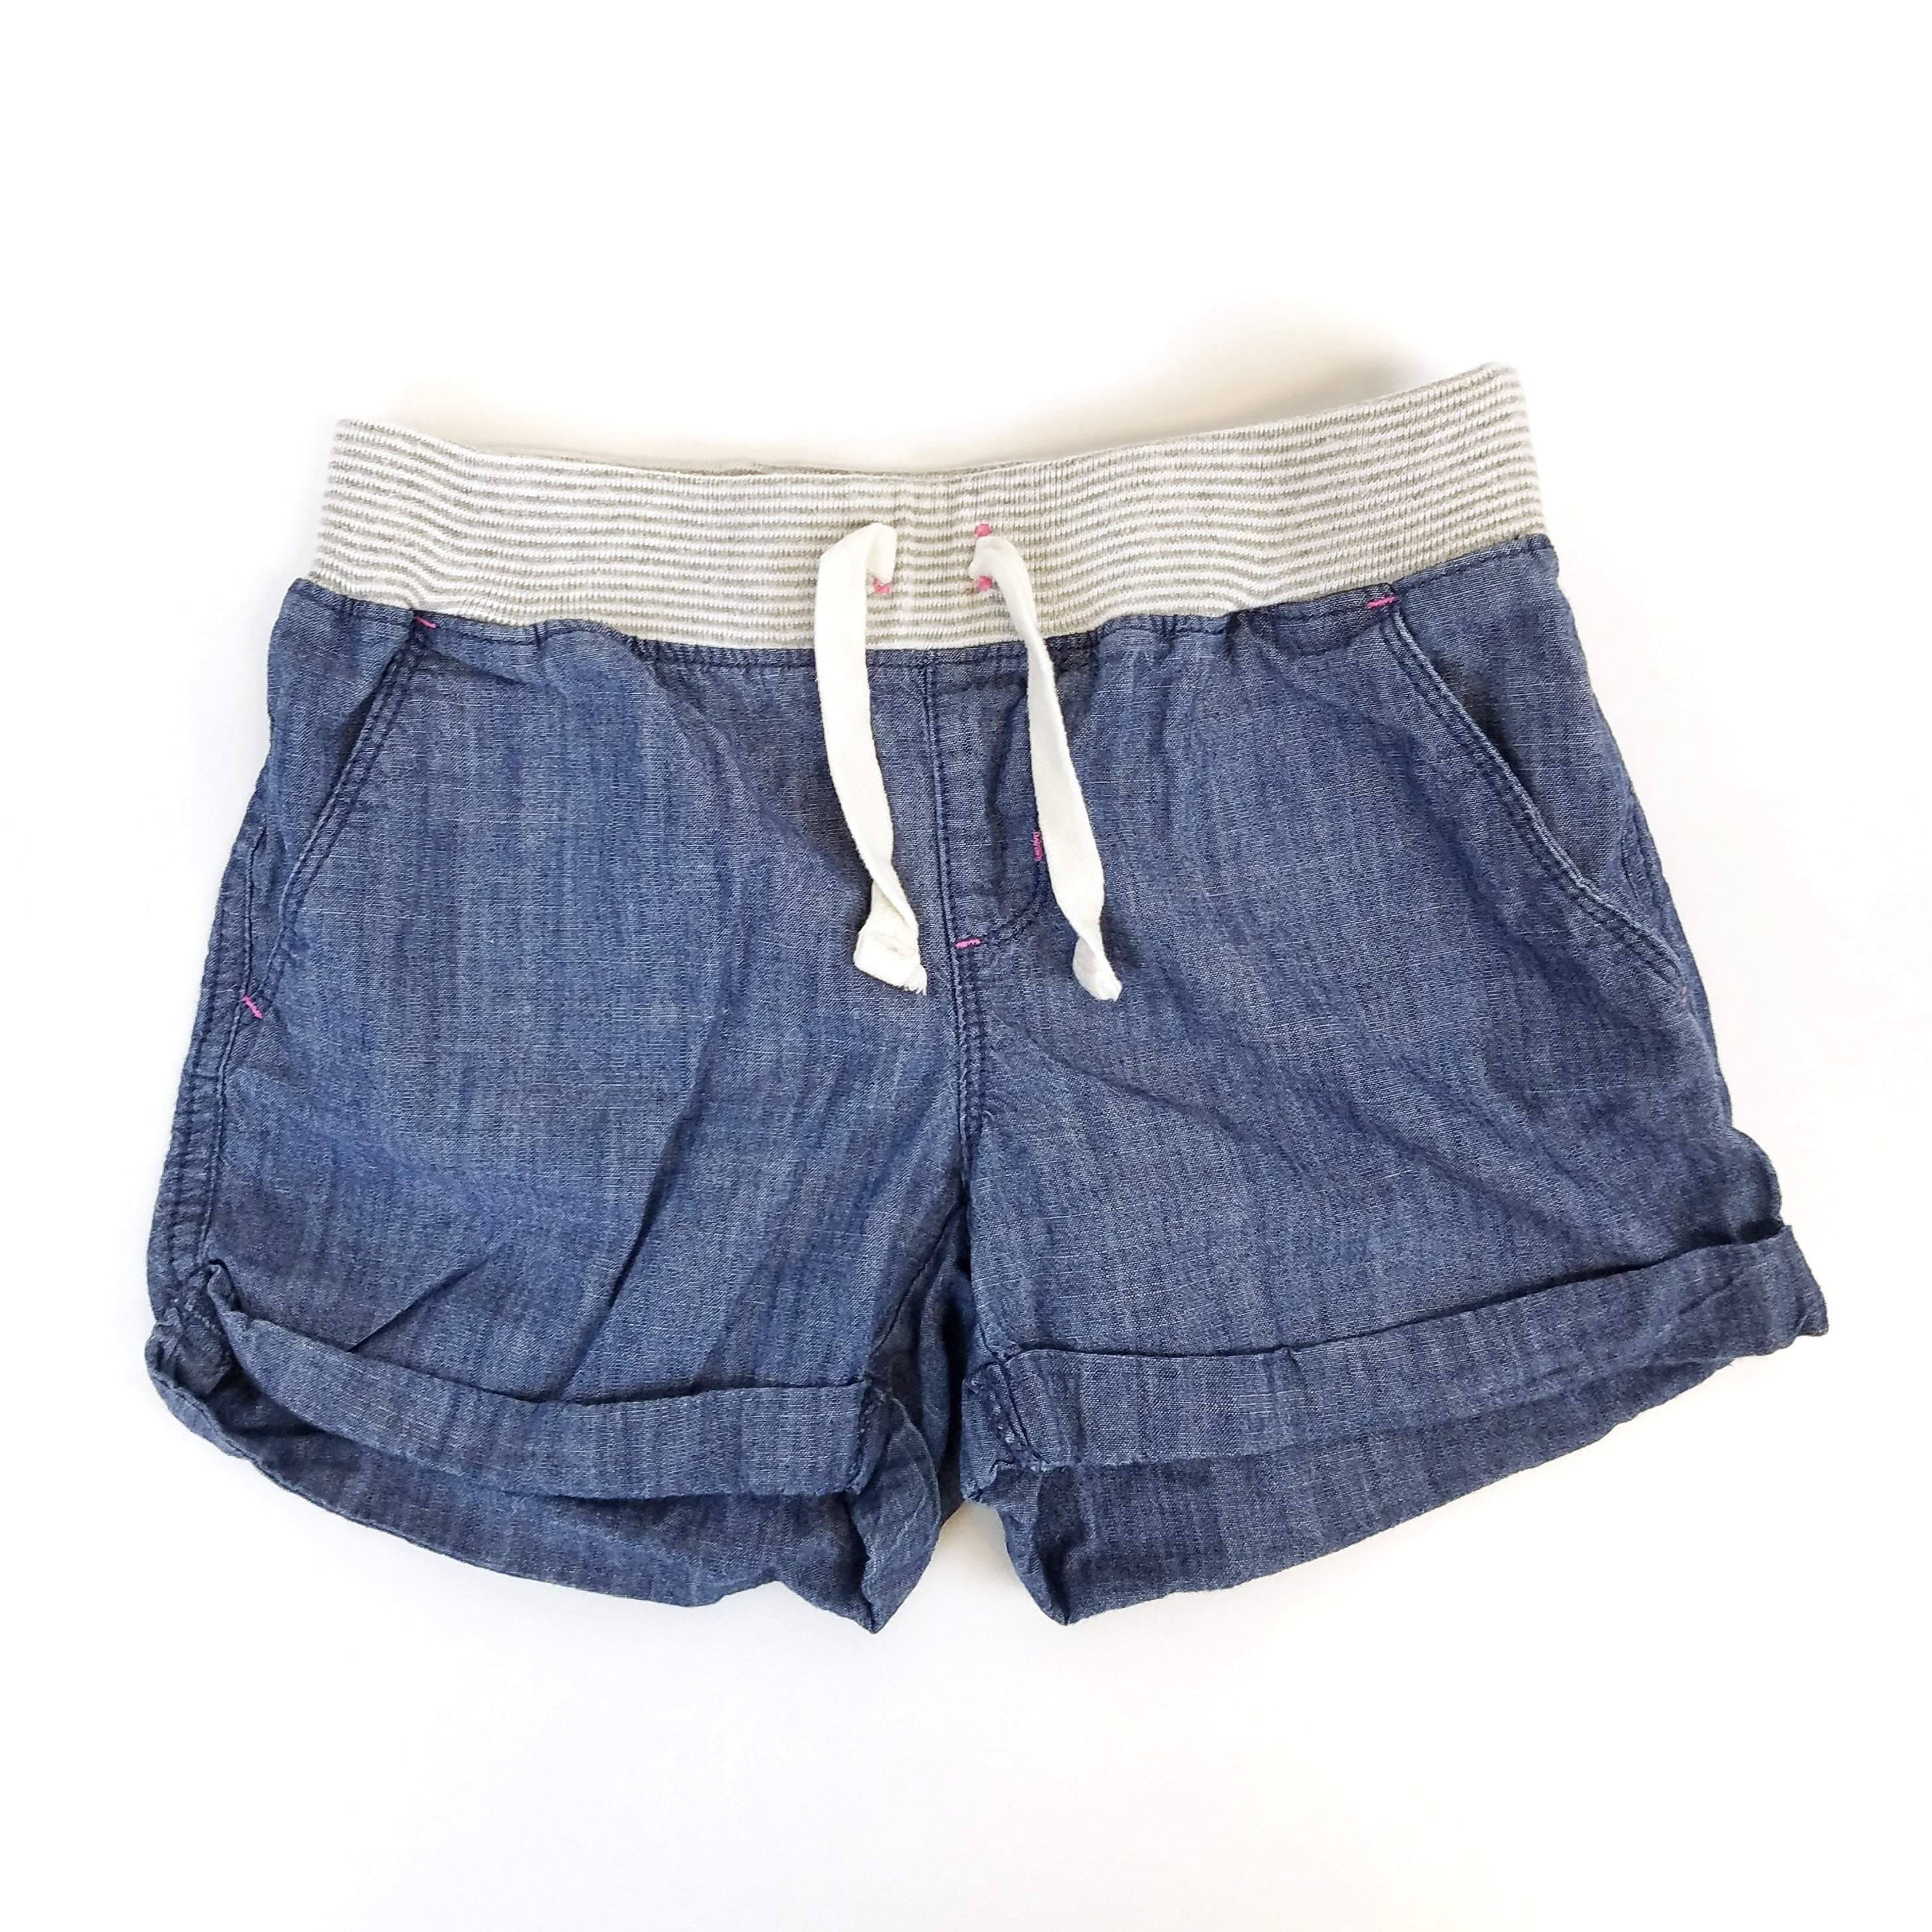 Sz 8 Soft Waist Chambray Shorts - Wild Child